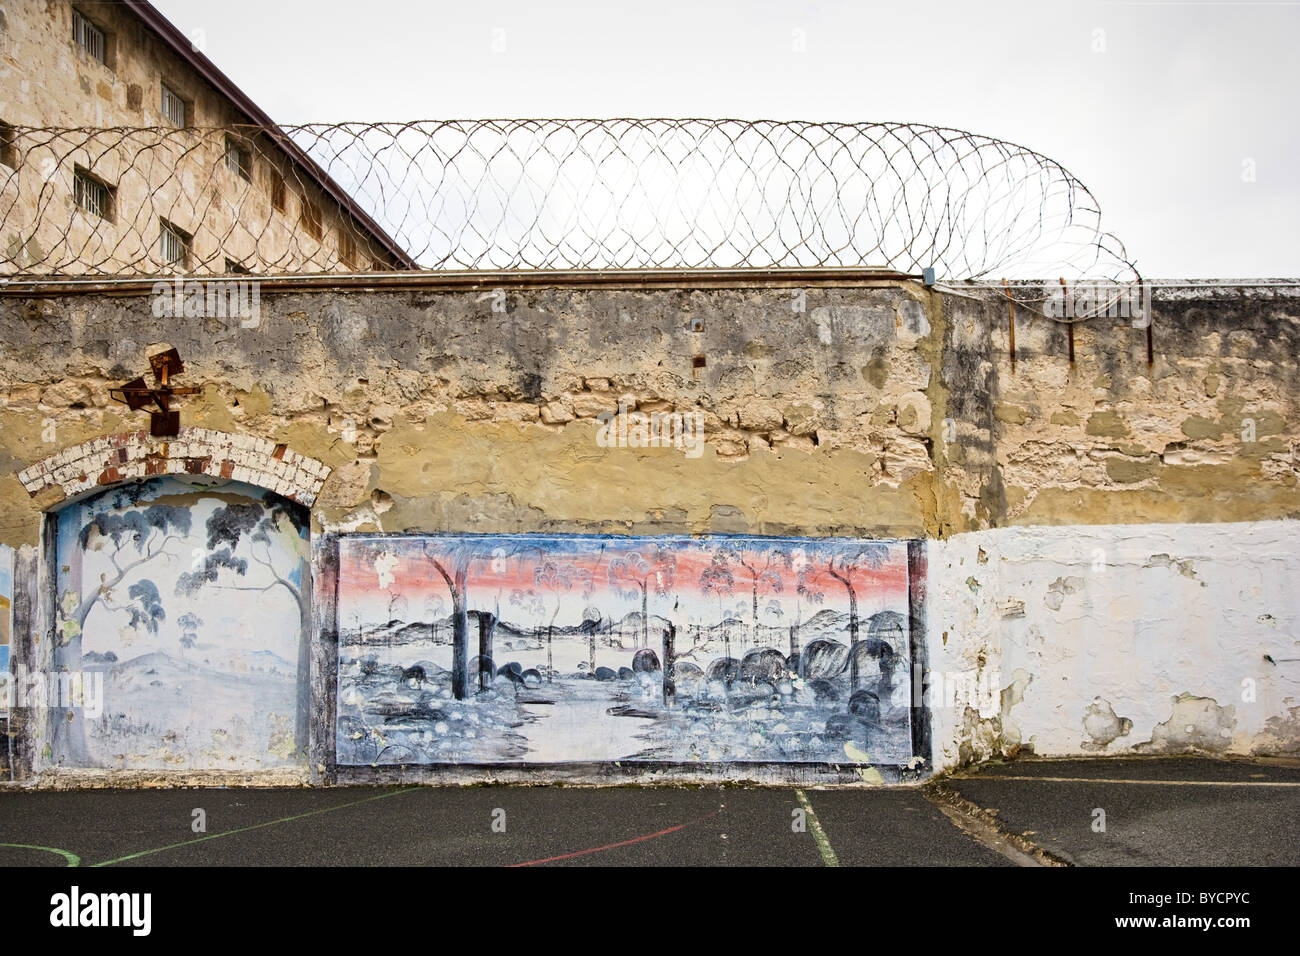 Grim walls of the exercise yard topped with razor wire and decorated with Australian bush scenes at Fremantle prison - Stock Image